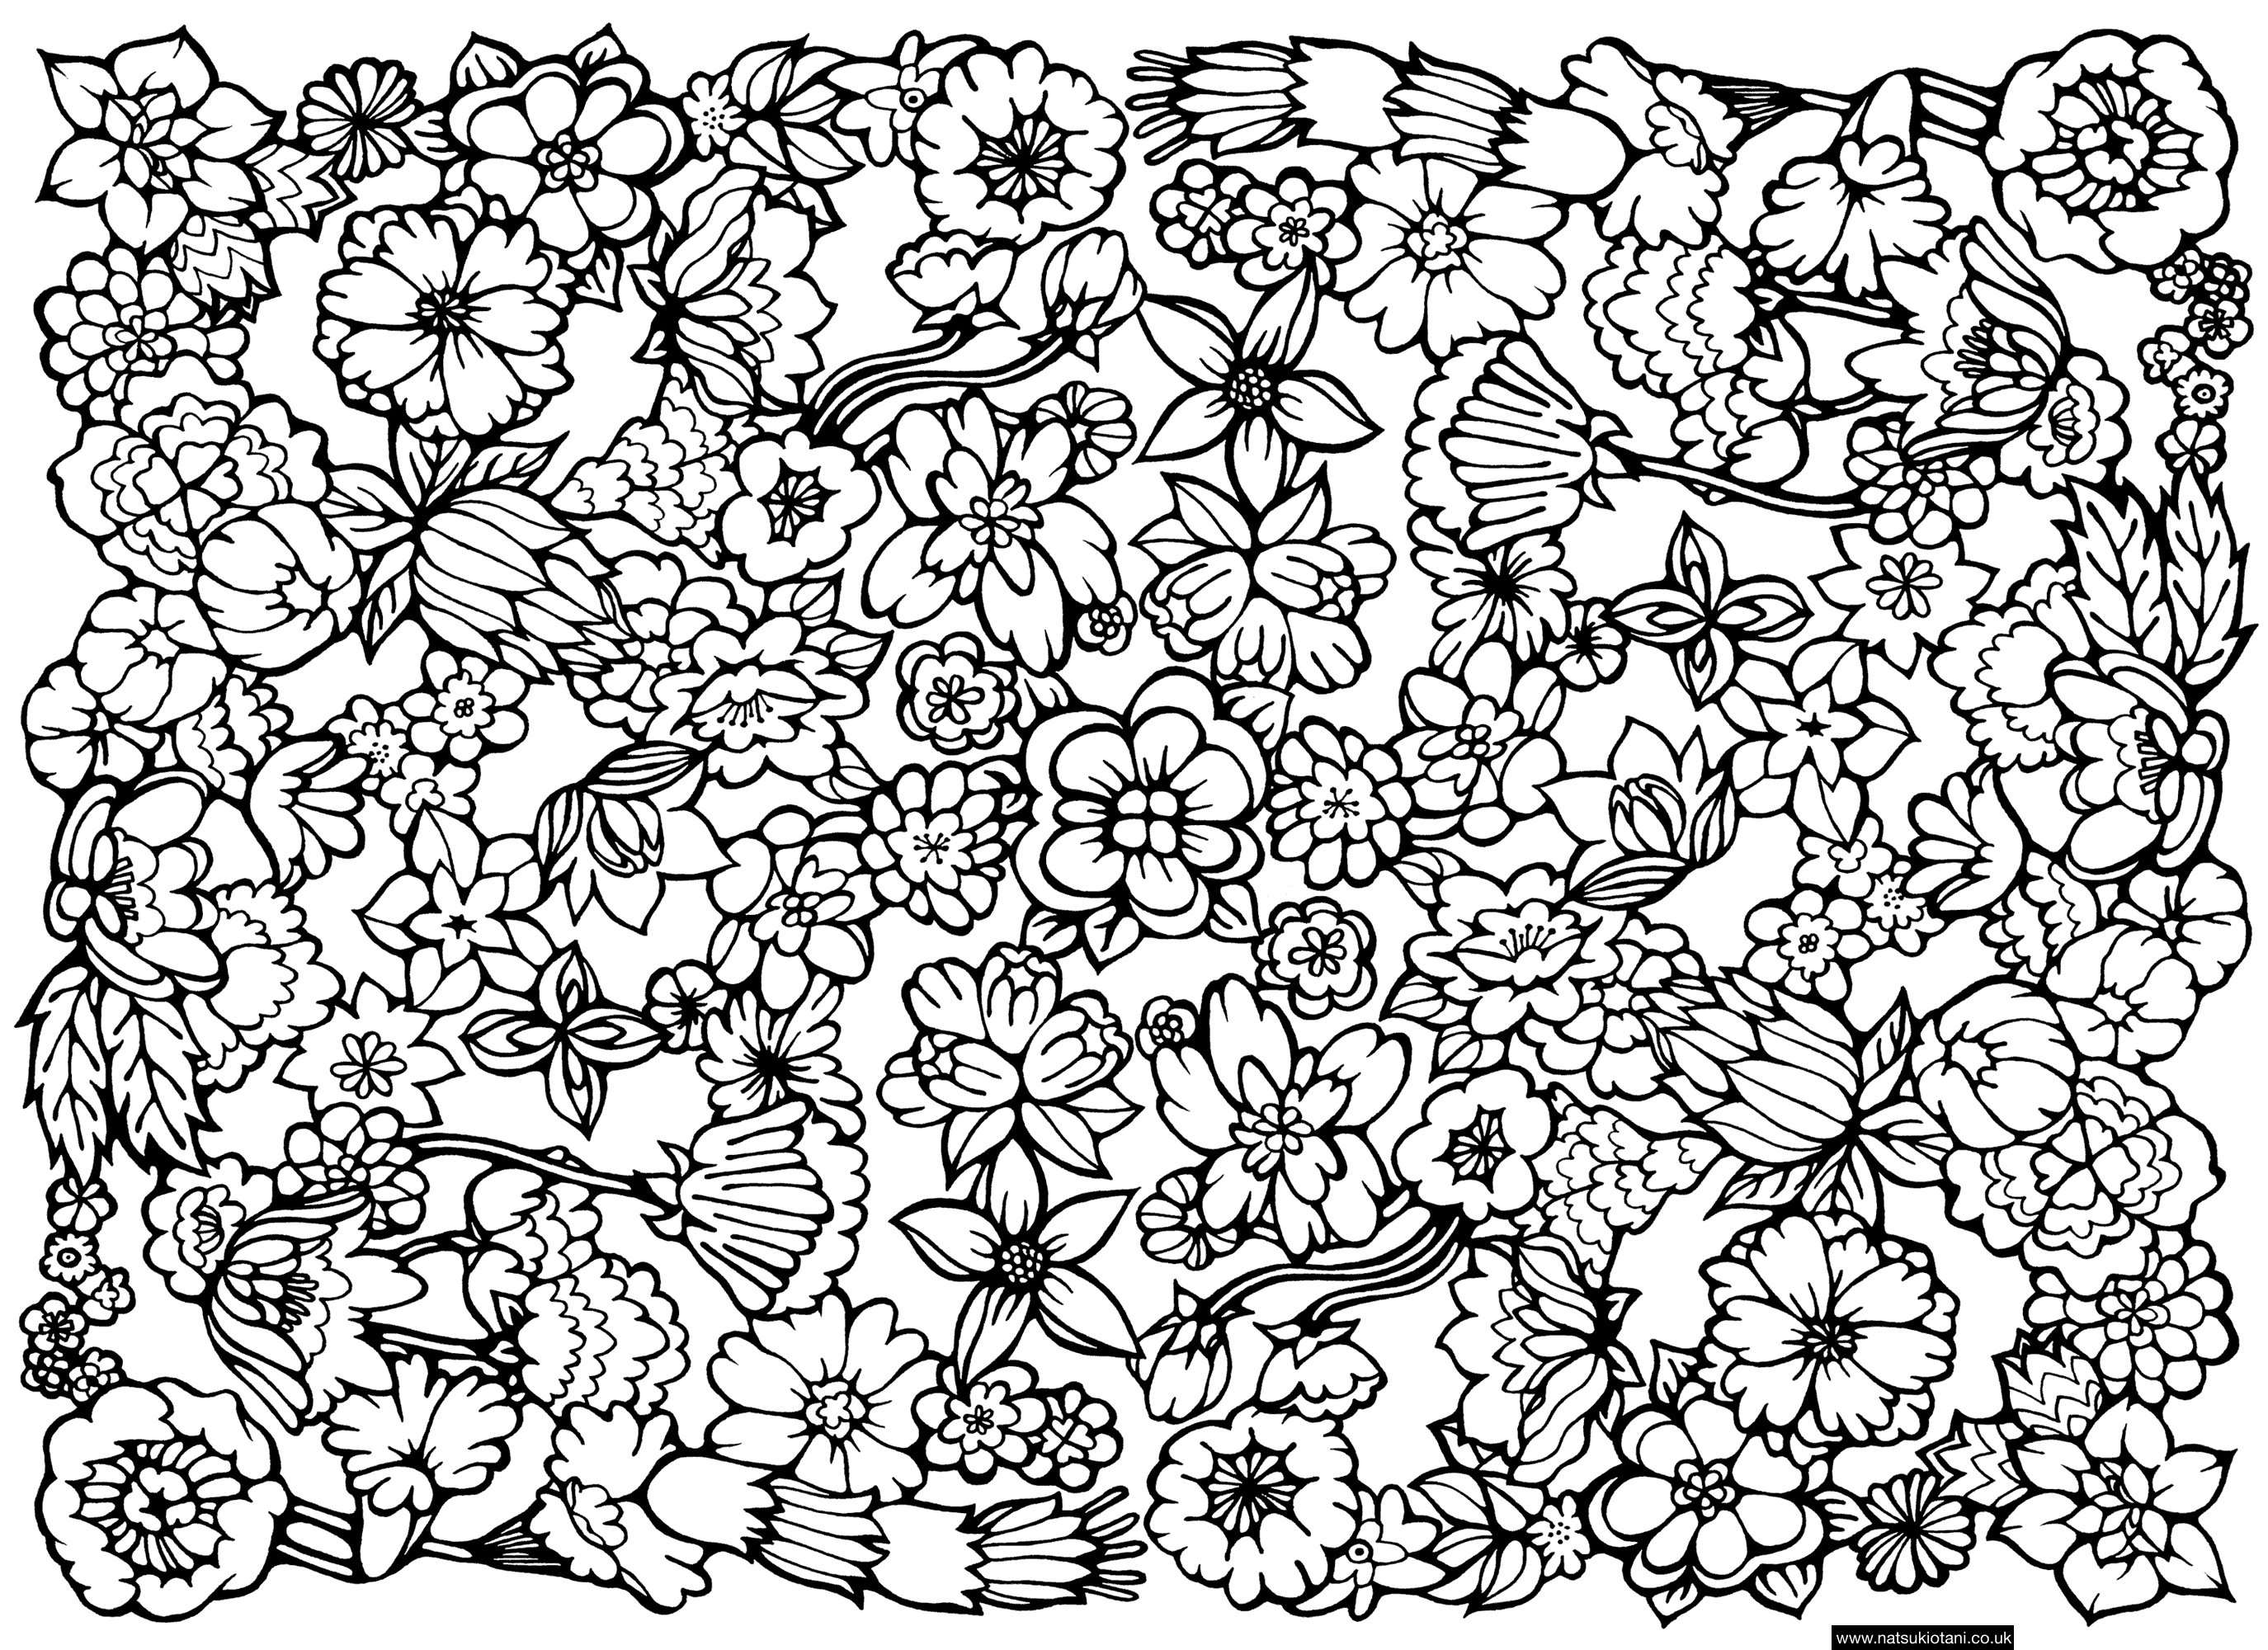 Drawn barbie flower Coloring Pattern Pages Cars Barbie